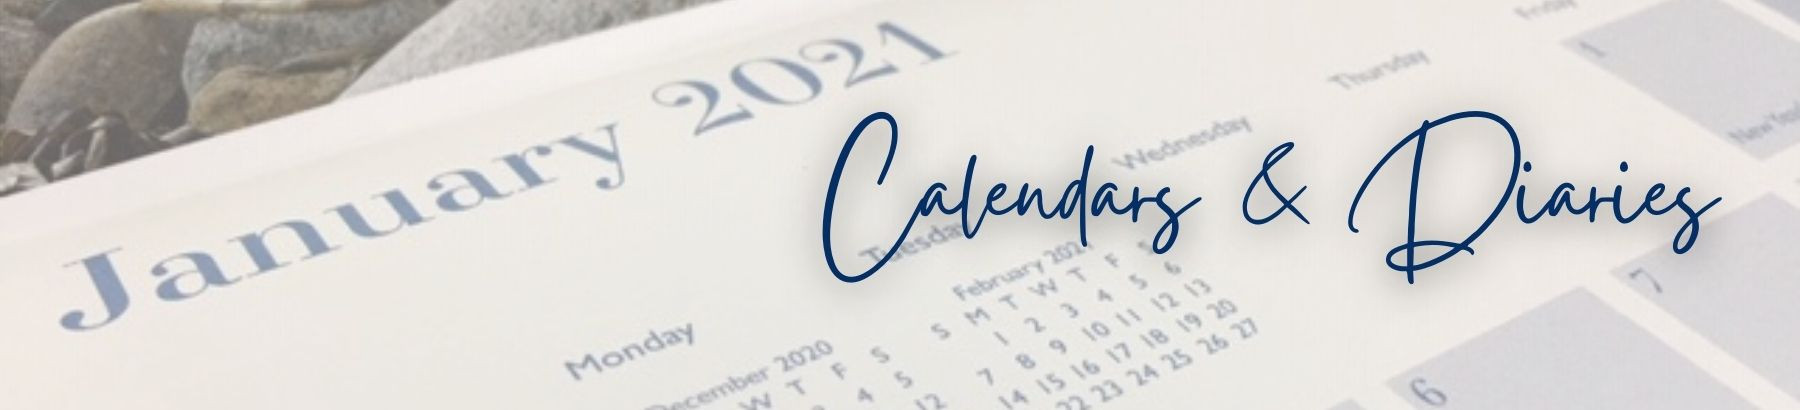 2021 Calendars and Diaries